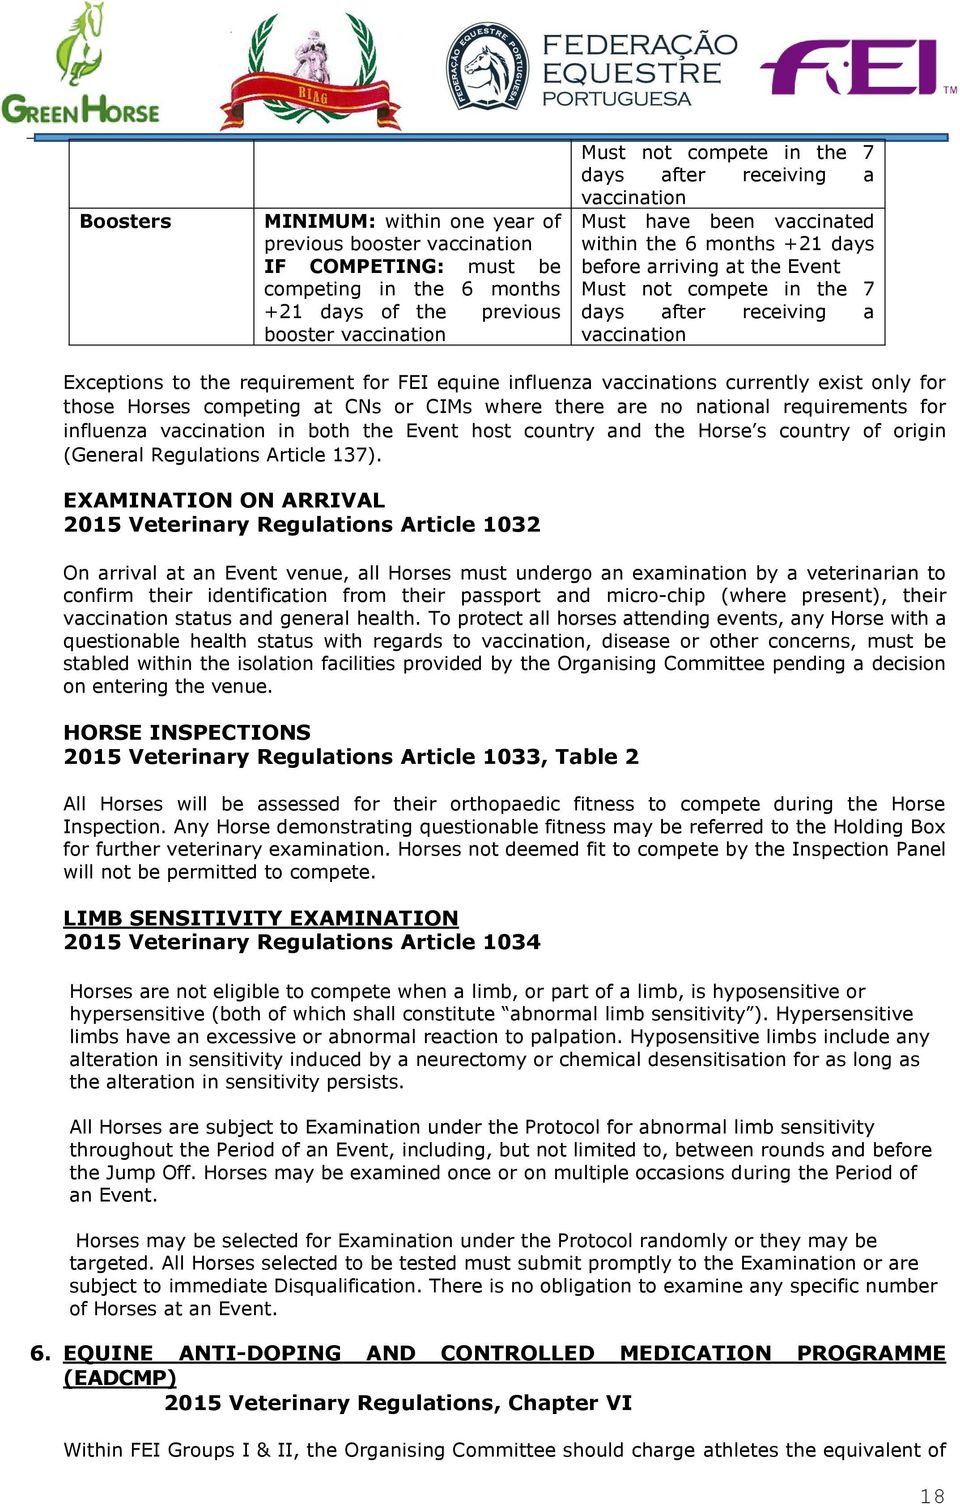 for FEI equine influenza vaccinations currently exist only for those Horses competing at CNs or CIMs where there are no national requirements for influenza vaccination in both the Event host country